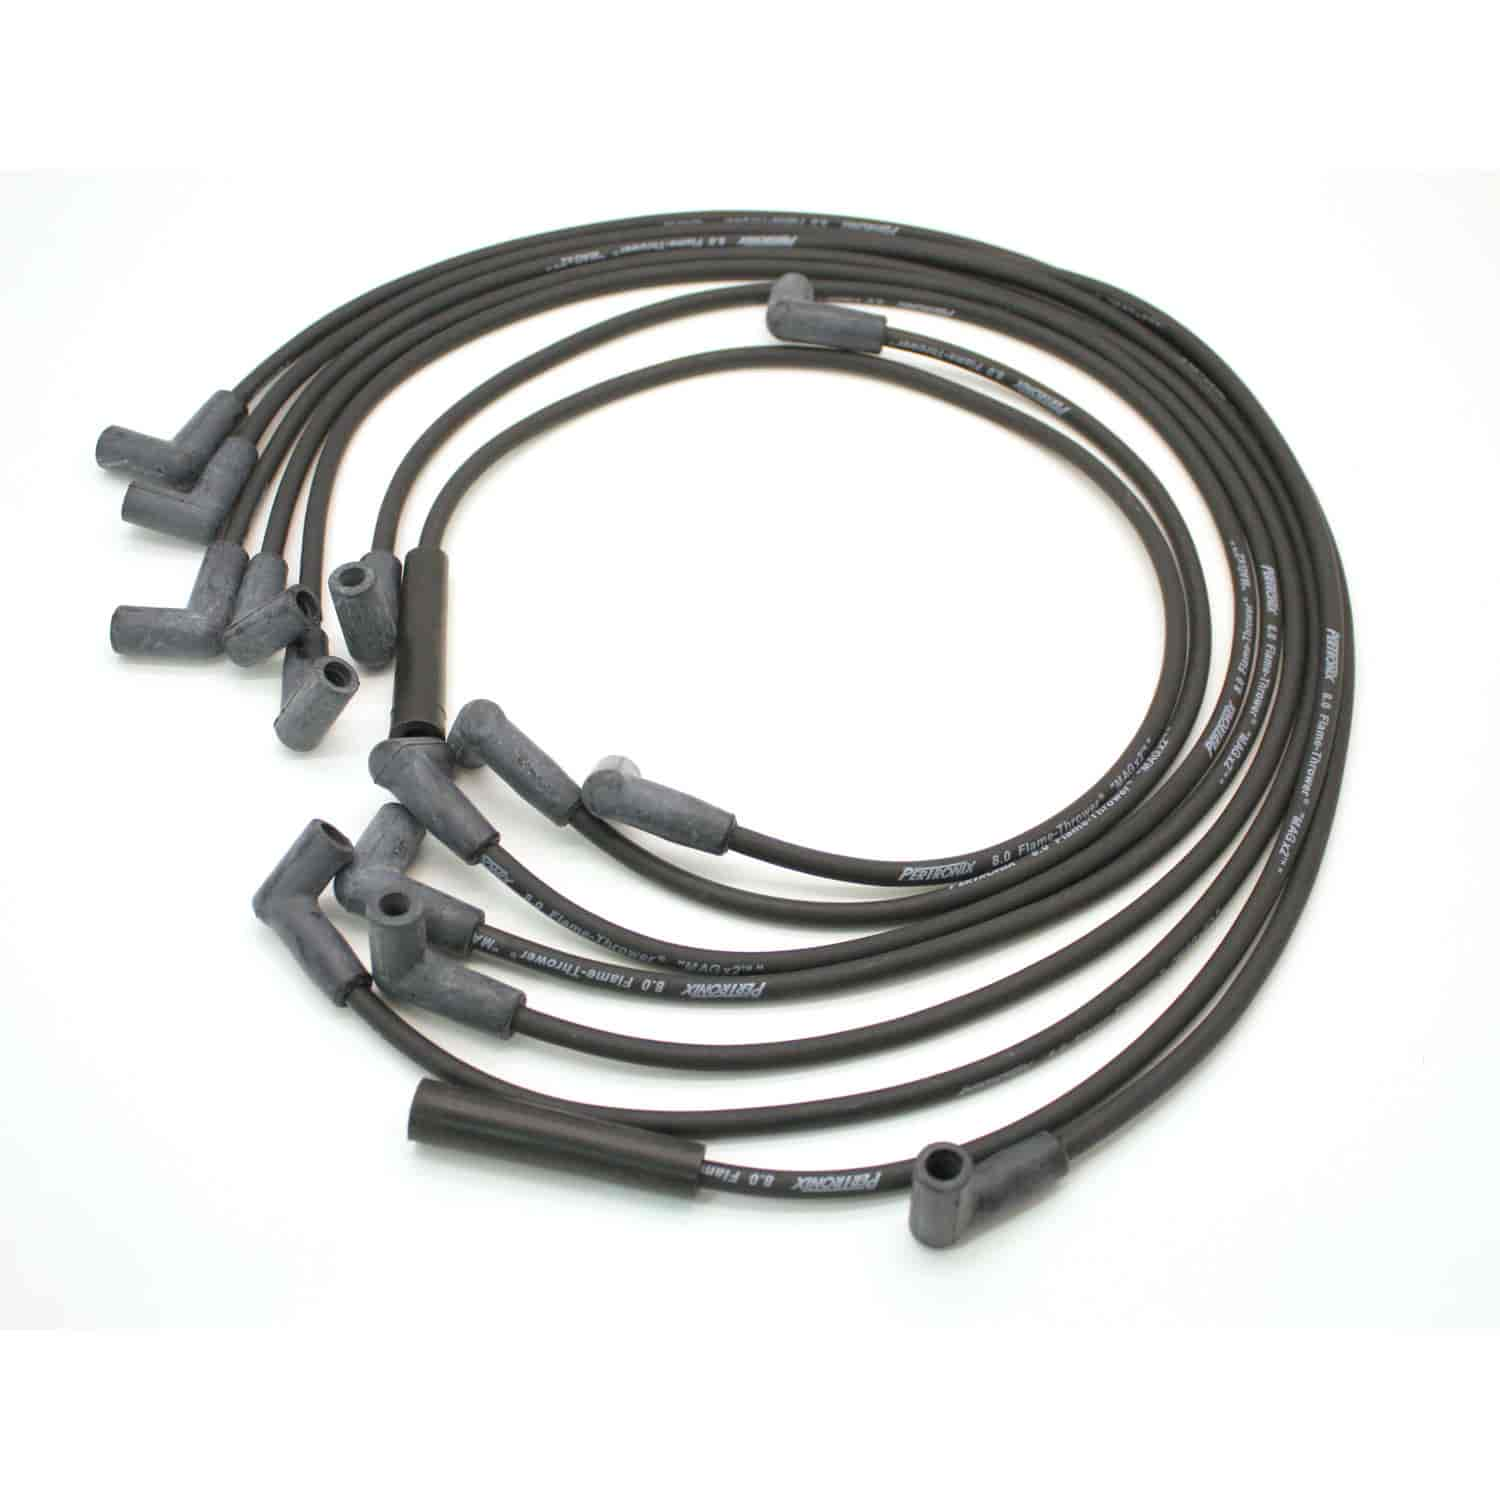 Pertronix 808207 - Pertronix Flame Thrower HEI Ignition Plug Wires